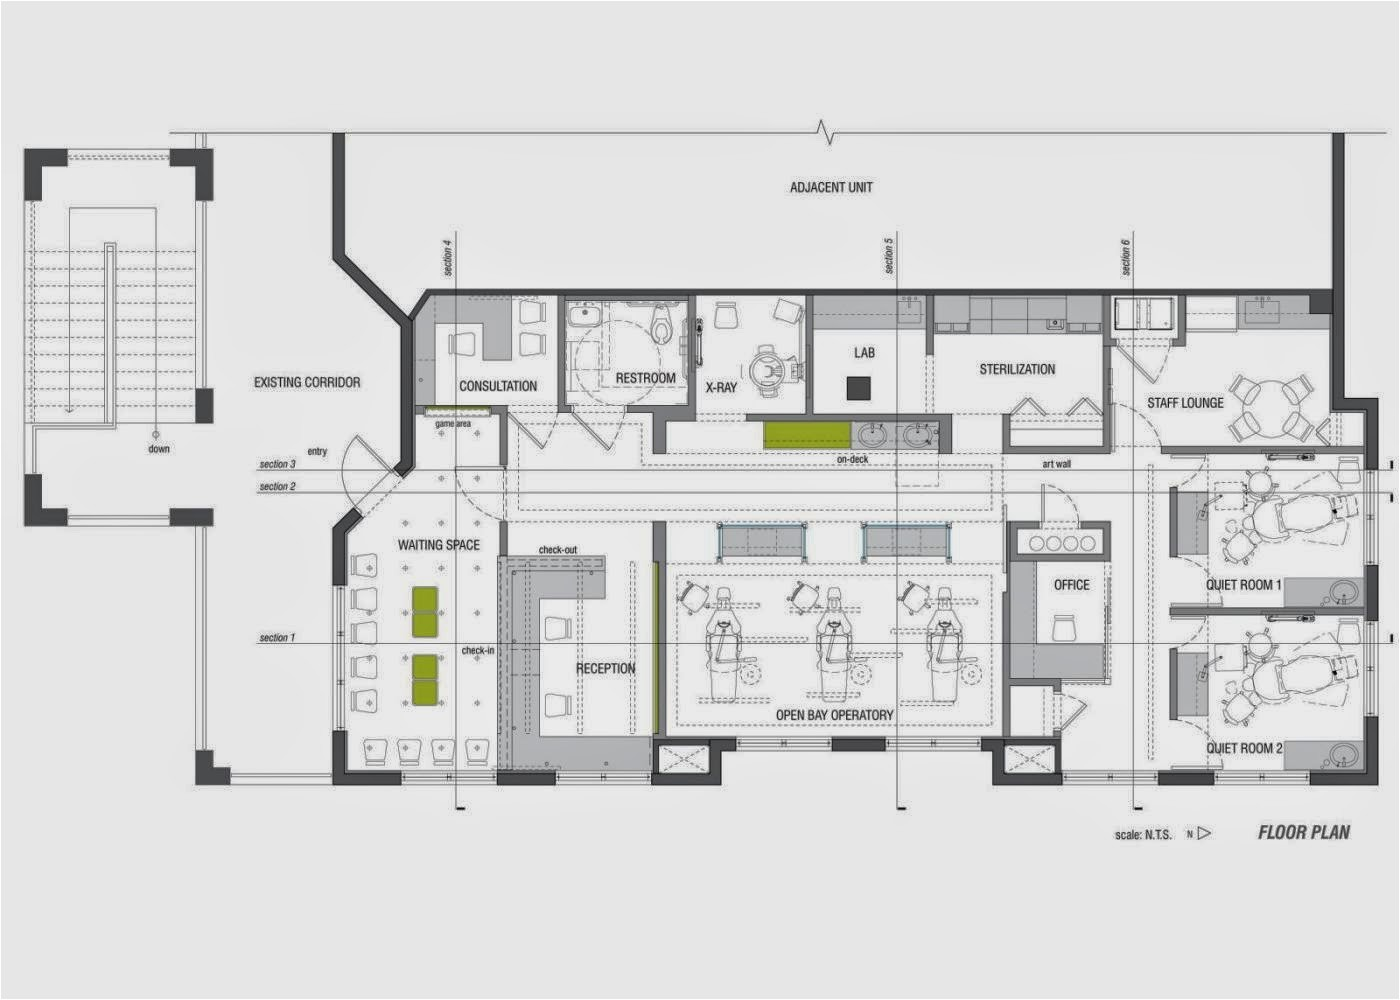 office layout ideas - Tosya.magdalene-project.org on home office layout examples, home floor plan illustration, home addition floor plans, home addition ideas, home office building ideas, home office plans layouts,